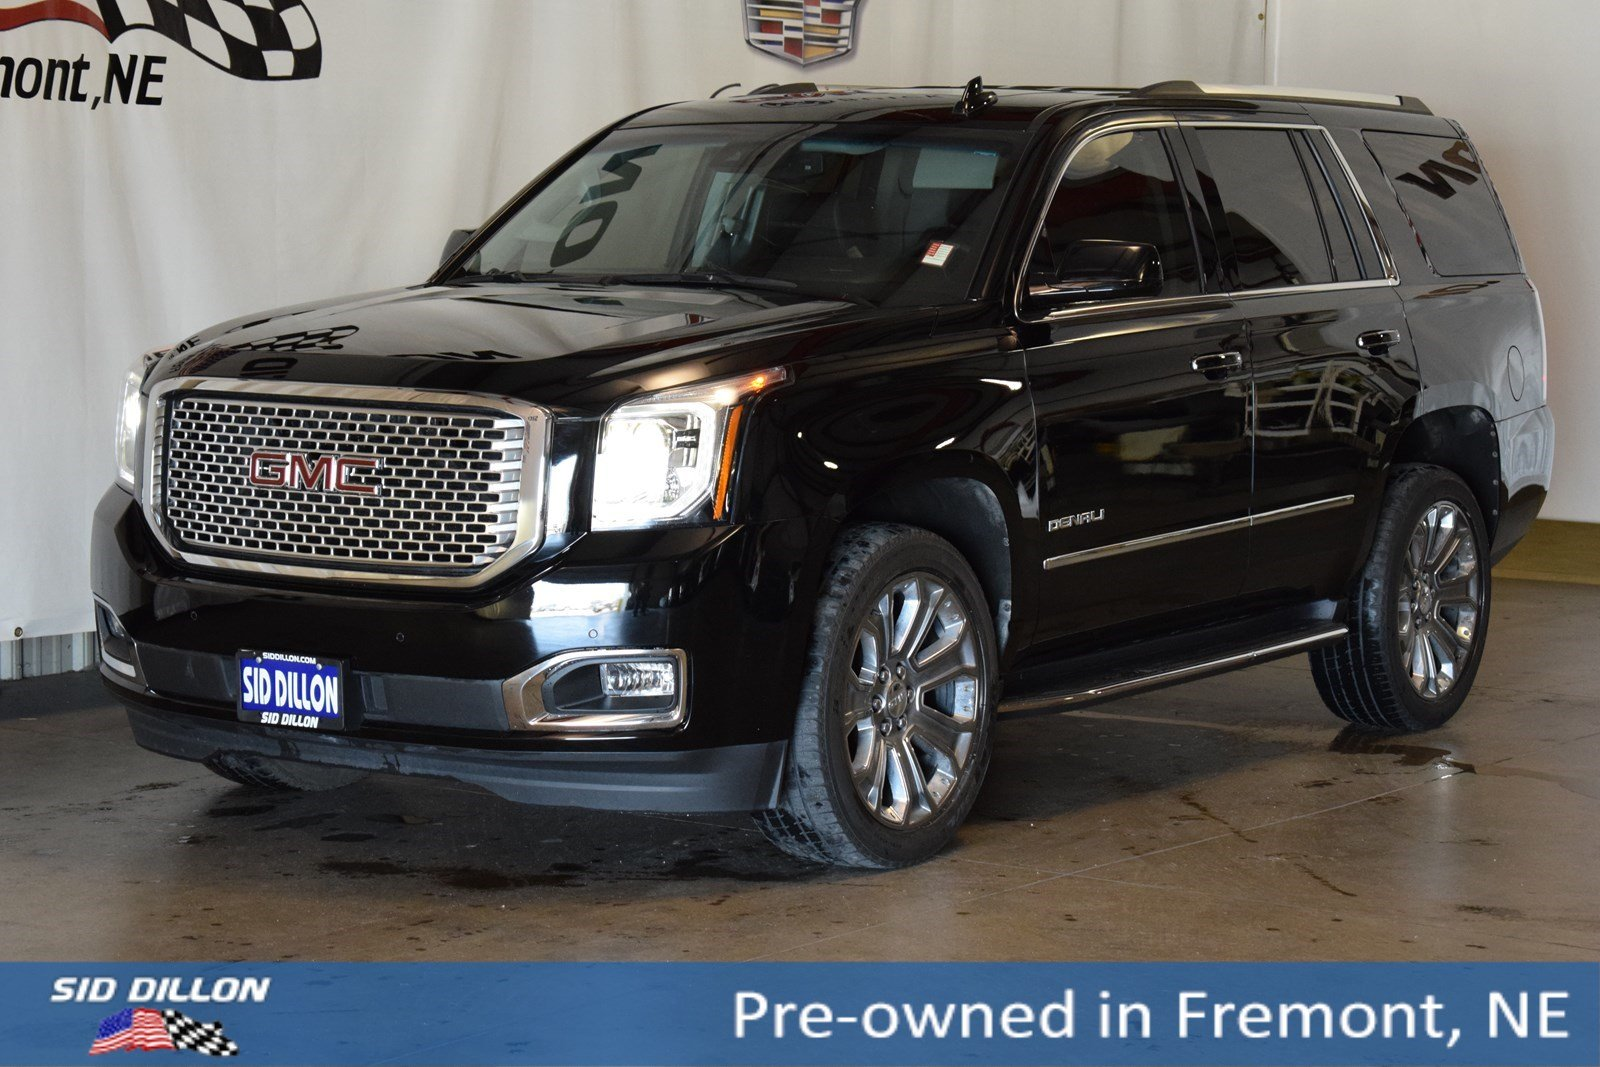 yukon review the of interior gmc denali truth cars about capsule